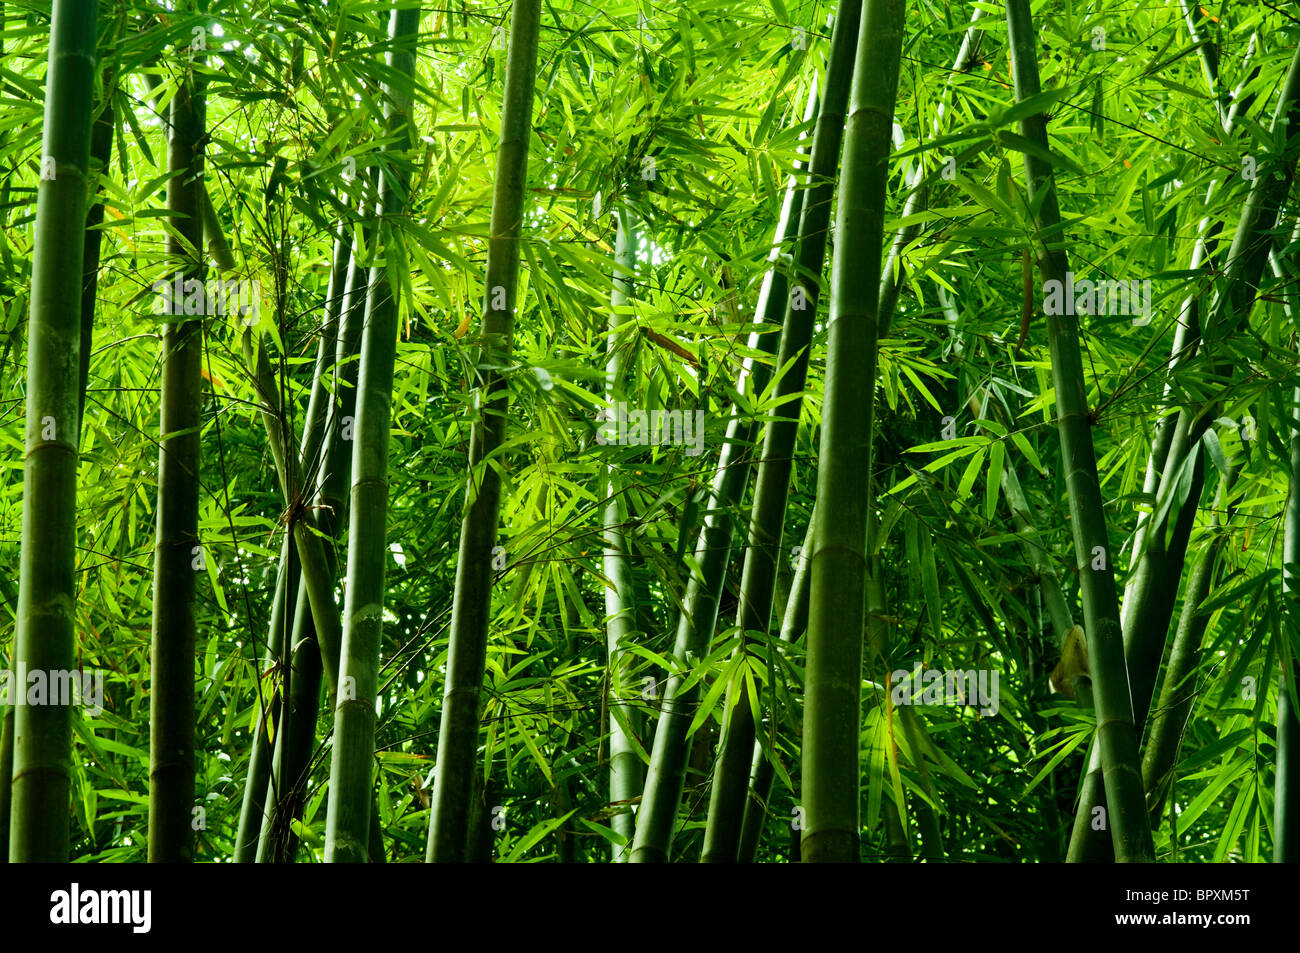 Landscape Of Bamboo Tree In Tropical Rain Forest Malaysia